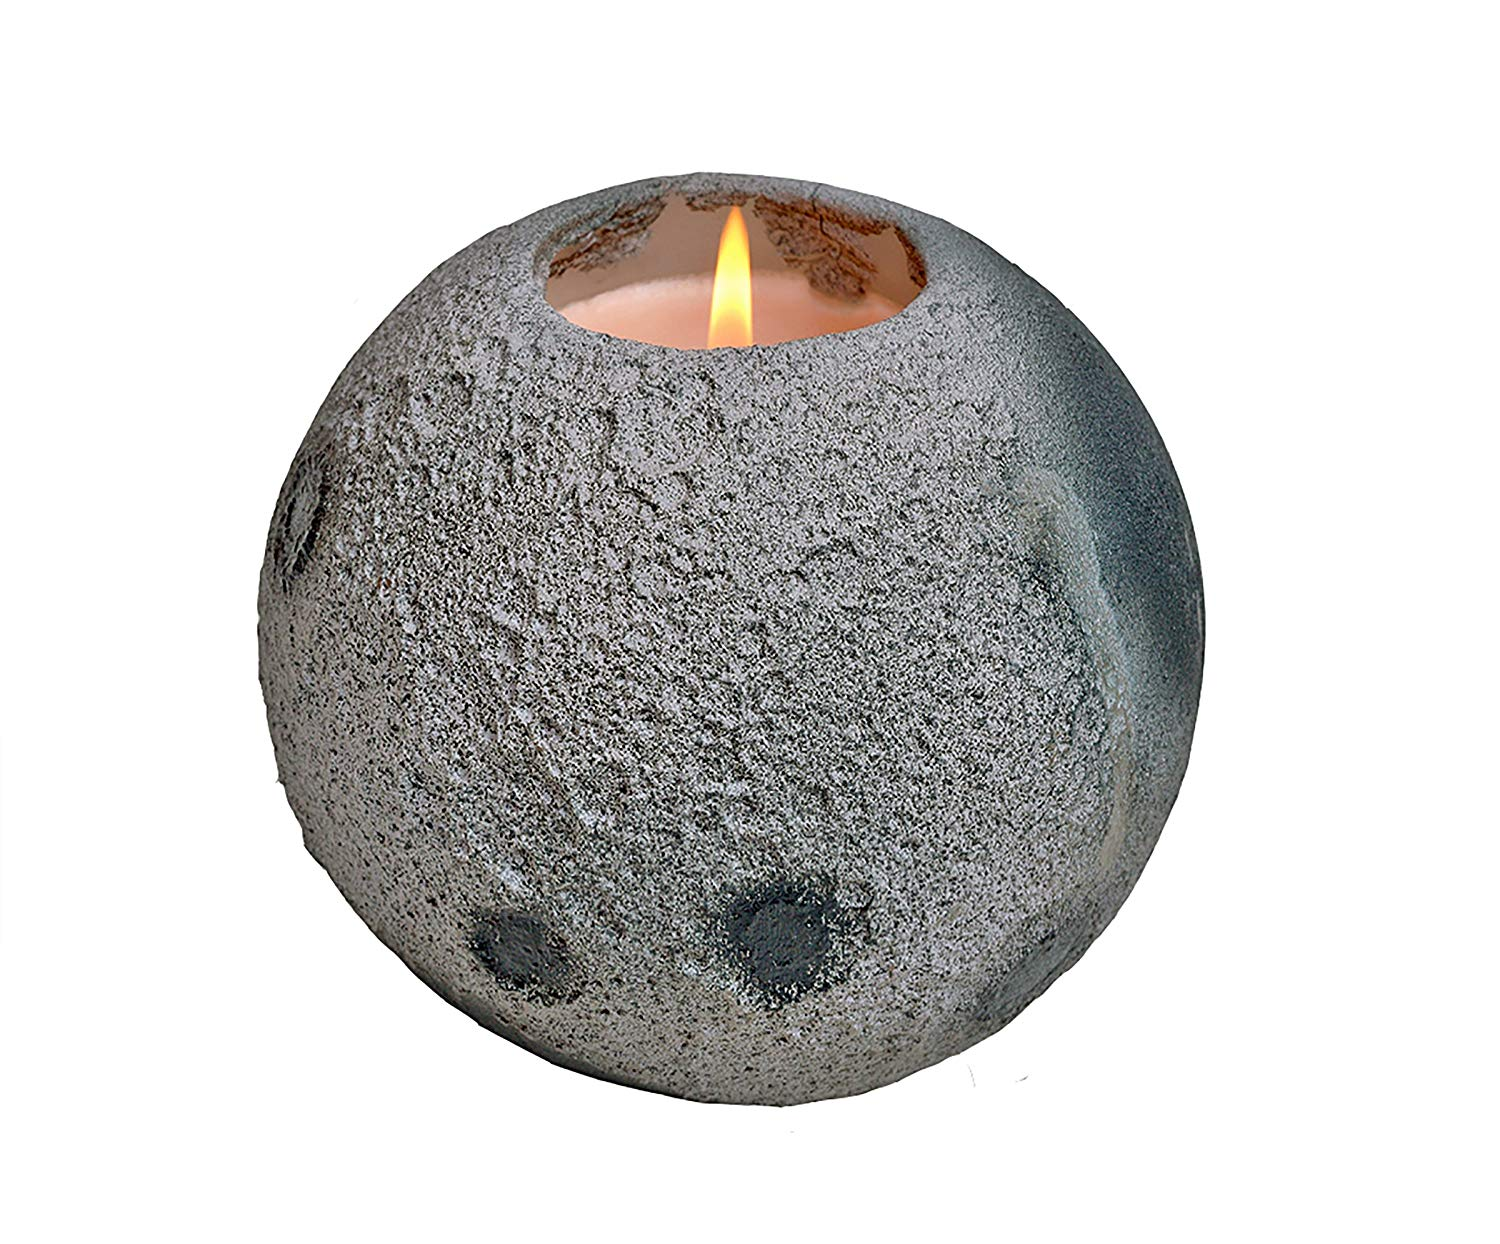 The Creative Desk Moon Candle